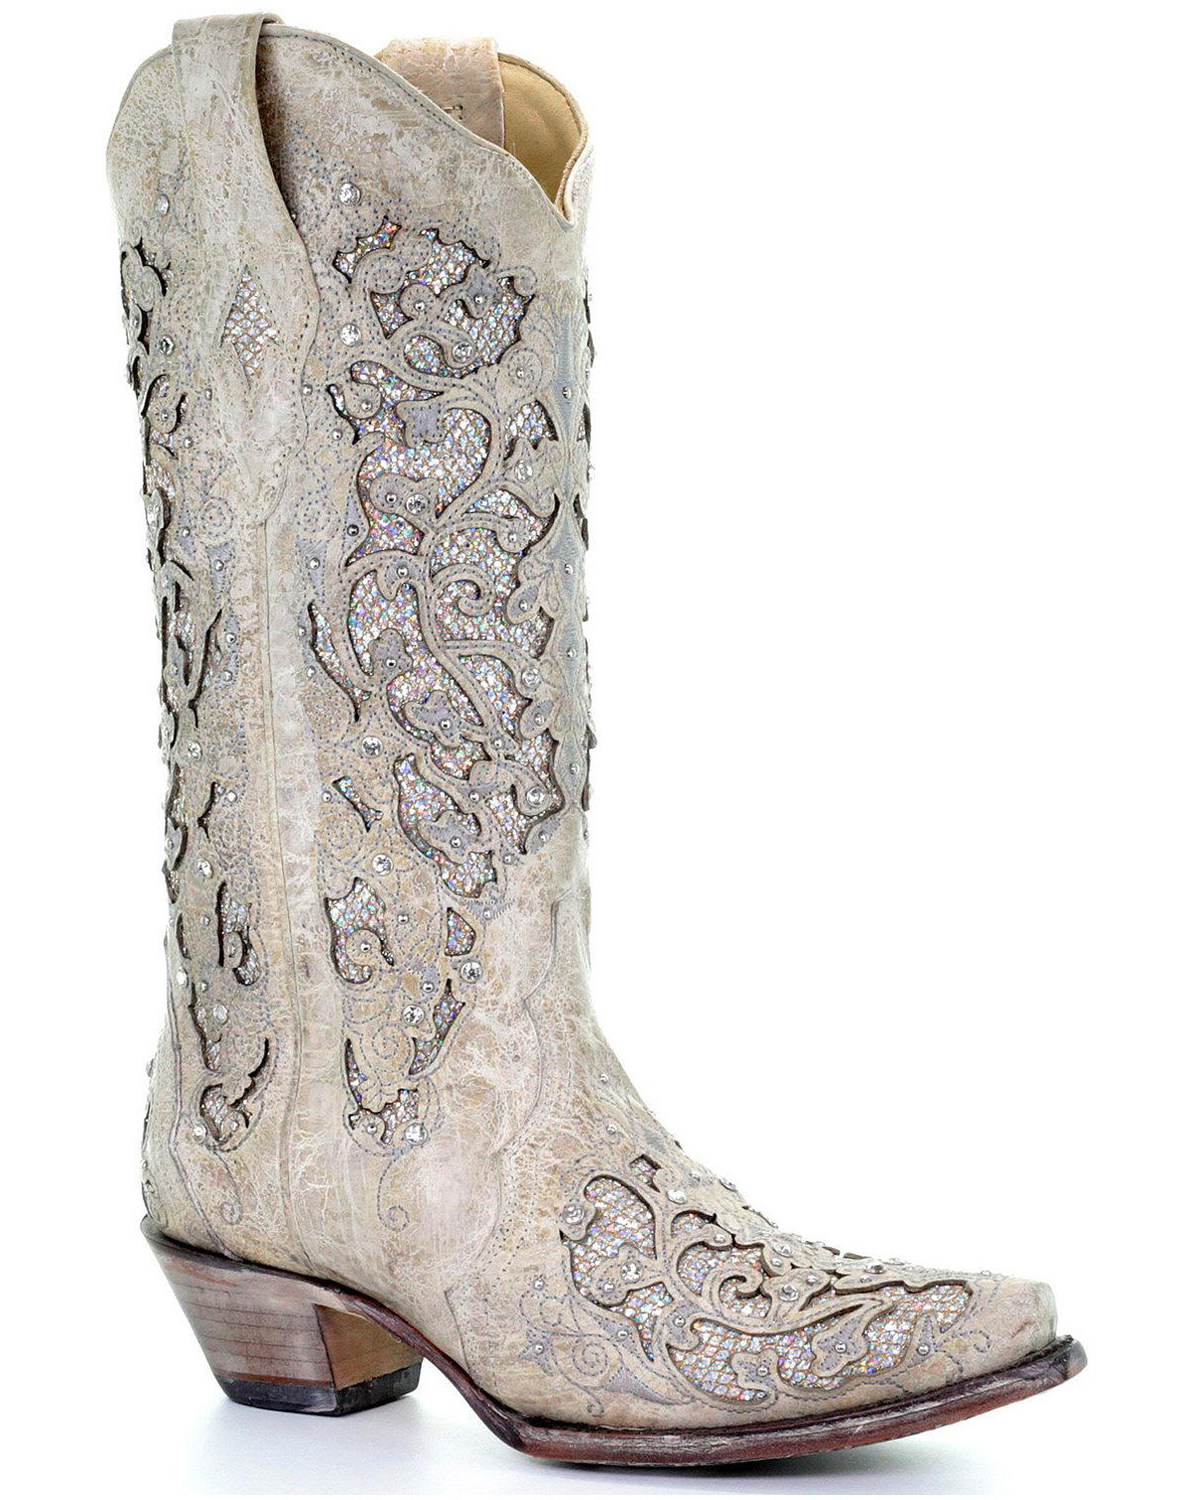 0c284dfd755 Corral Women's White Glitter Inlay Western Boots